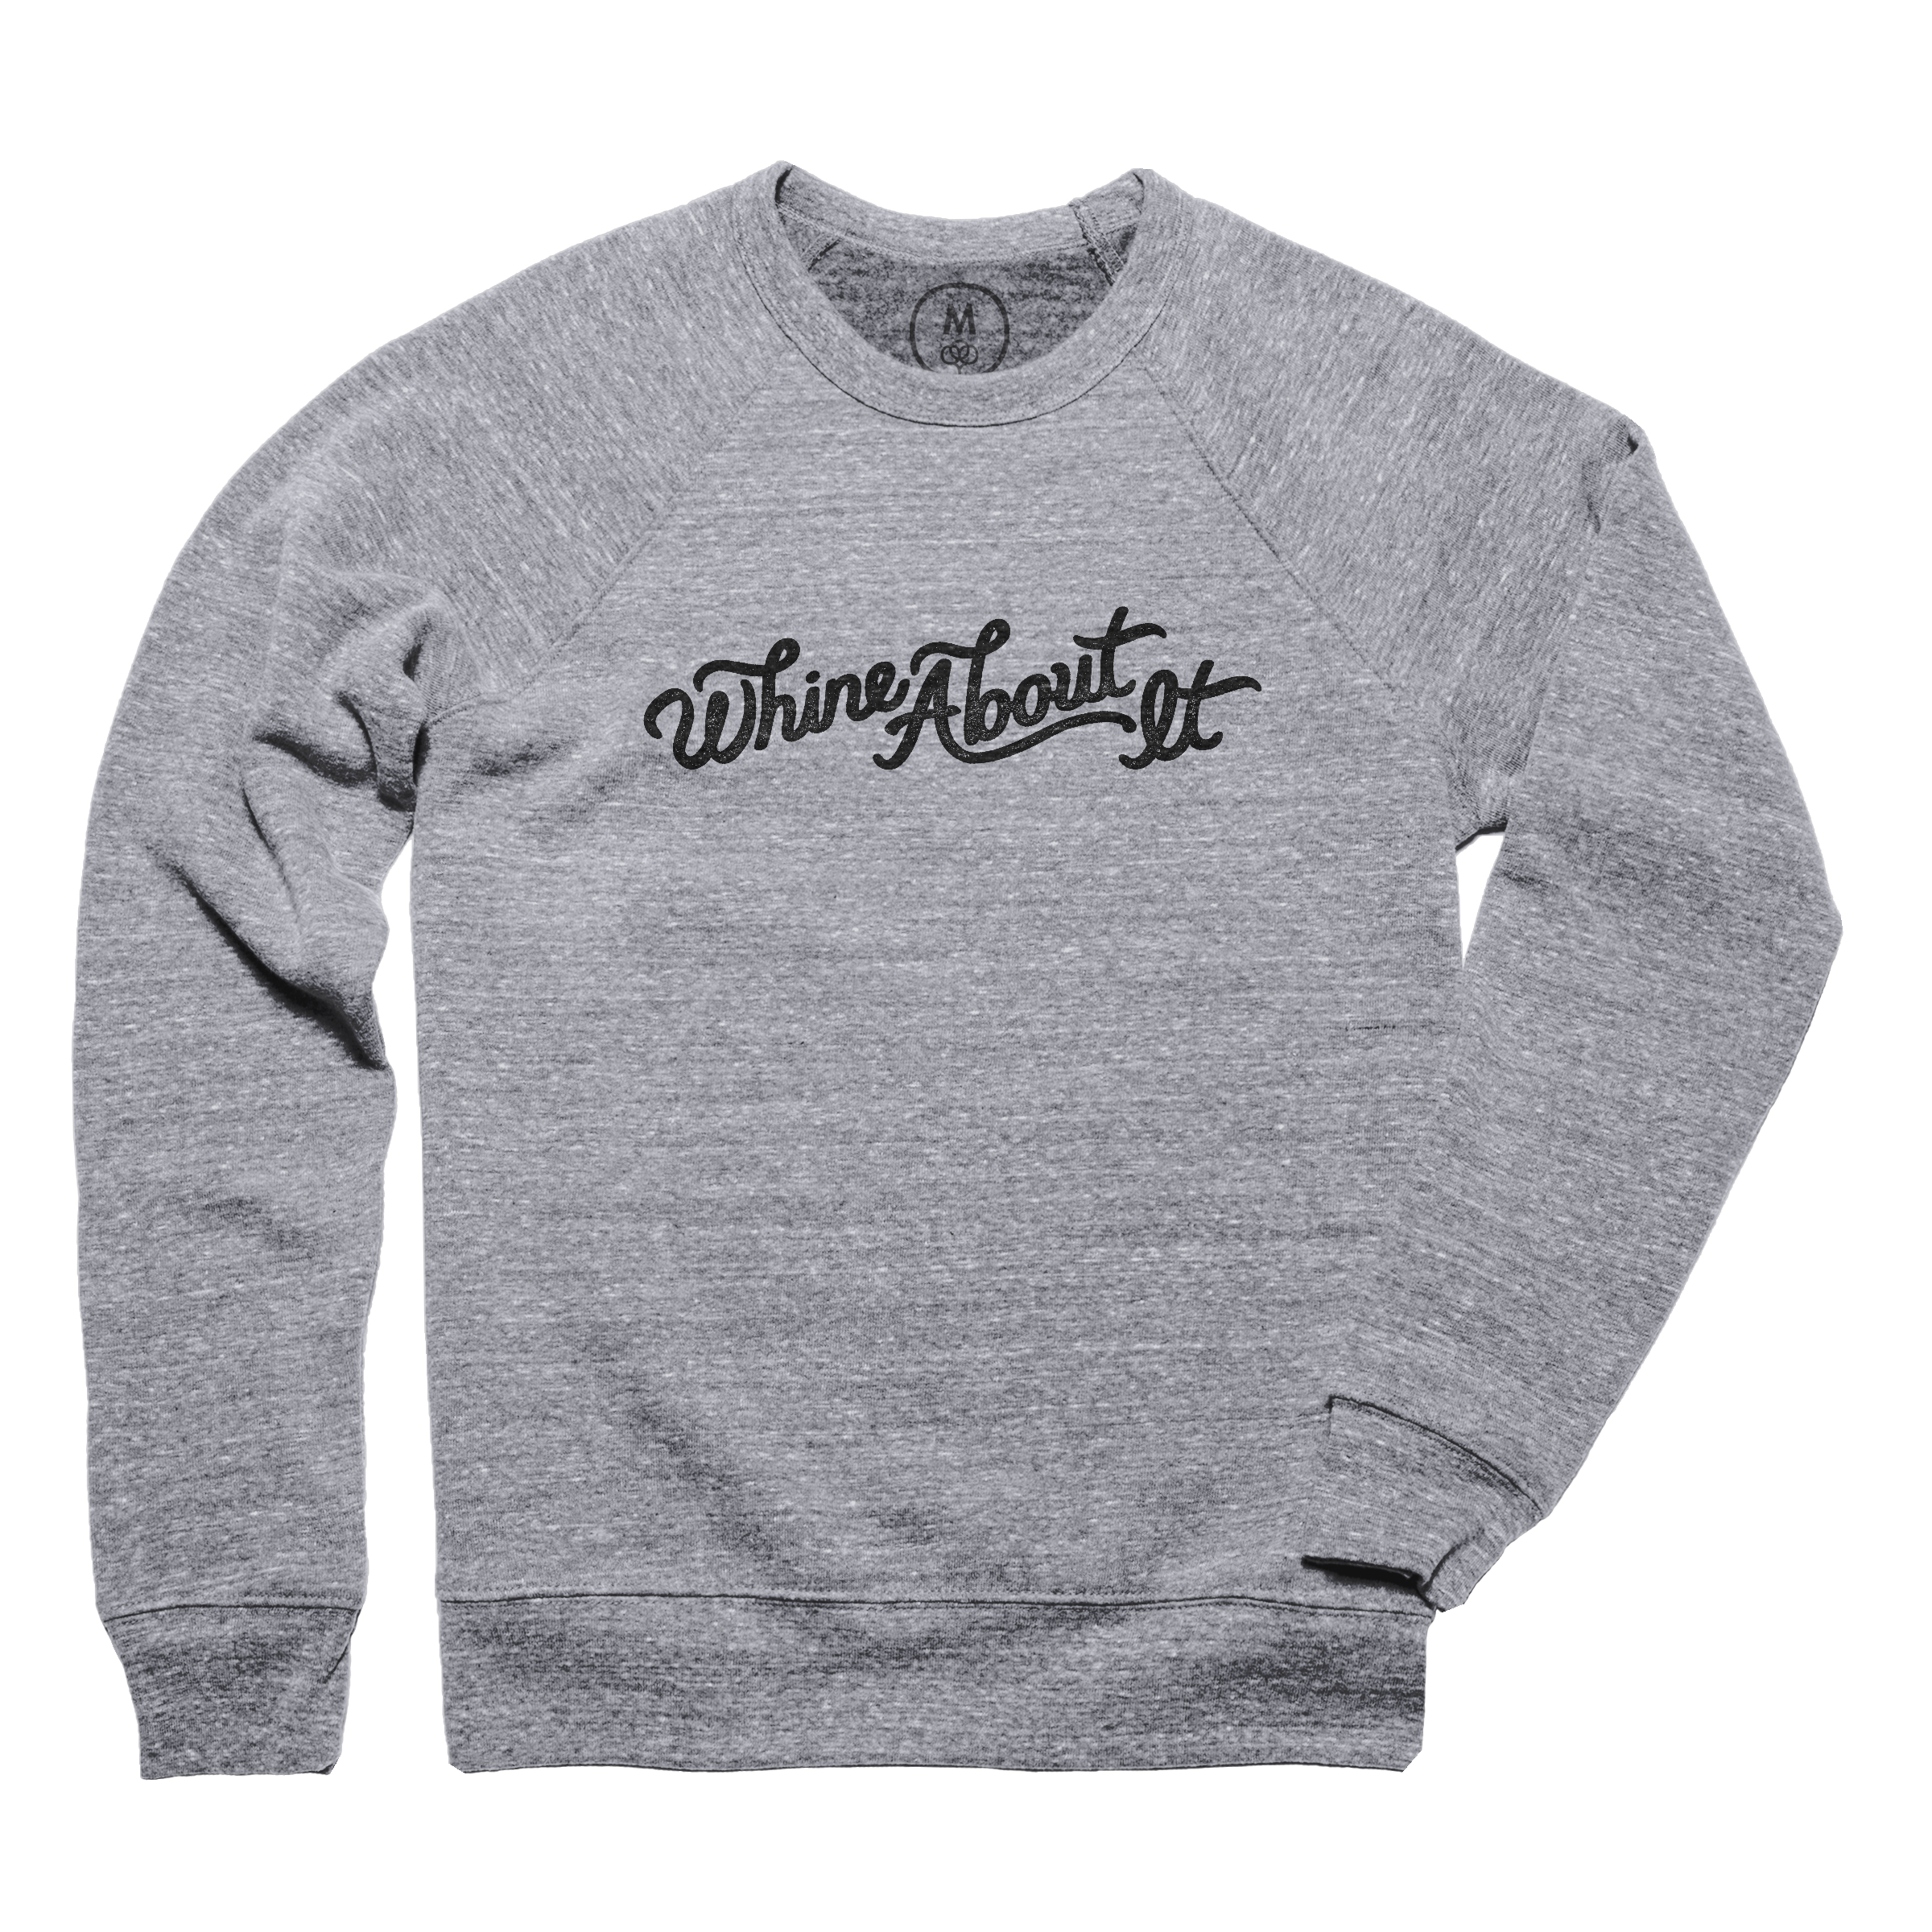 Whine About It Pullover Crewneck